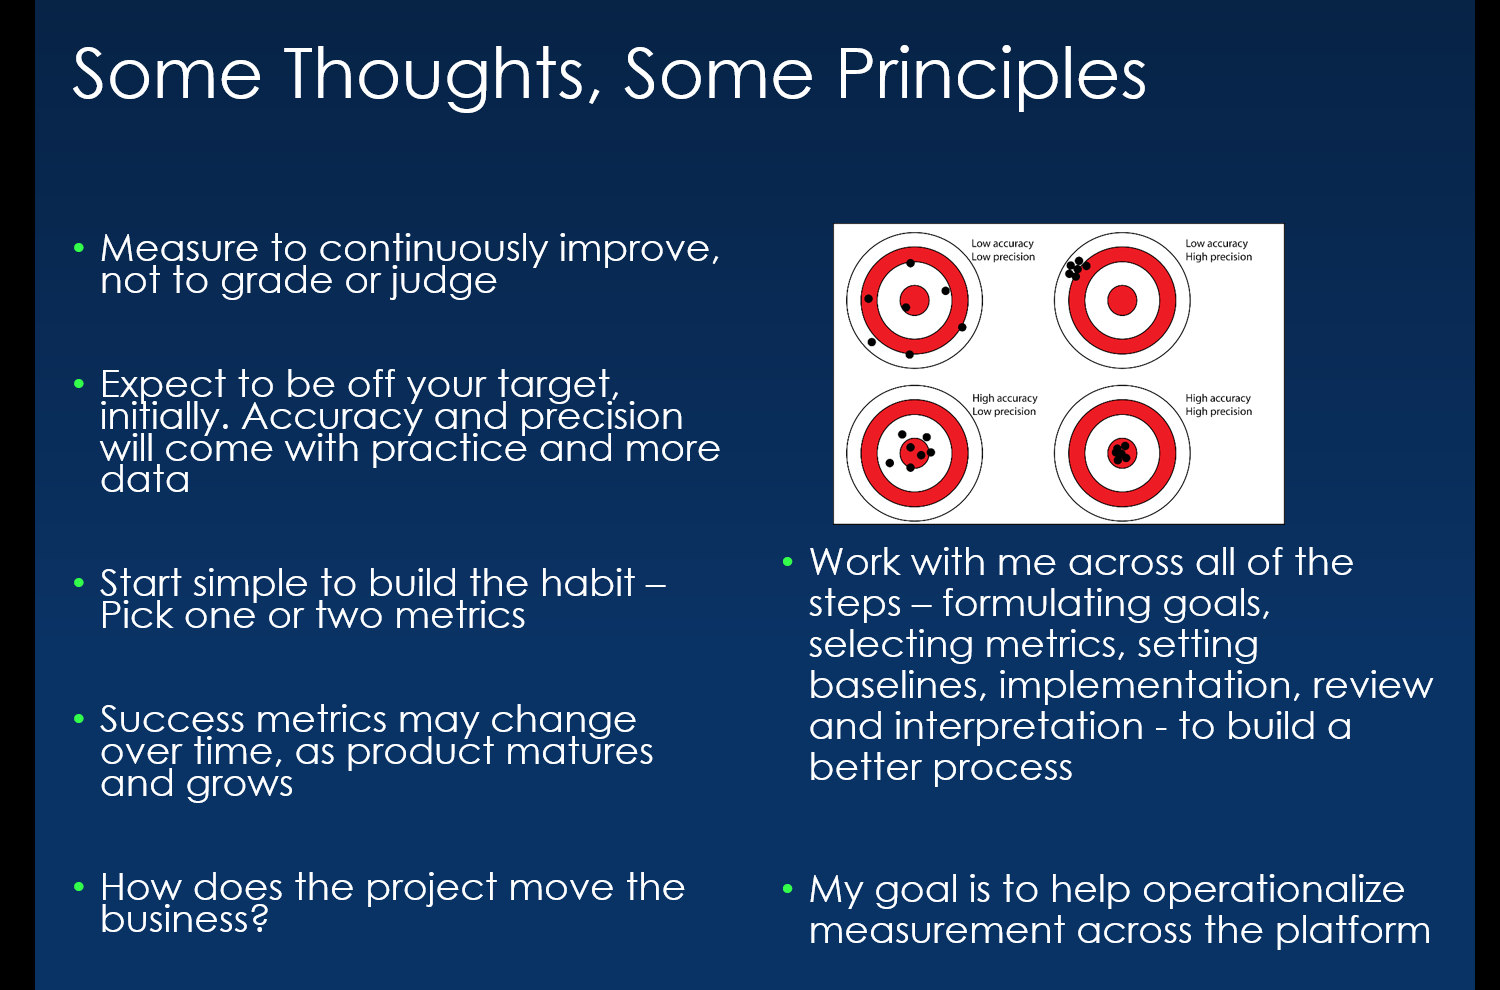 """Some thoughts and some principles. The most critical one for us has been """"Measure to continuously improve, not grade or judge"""